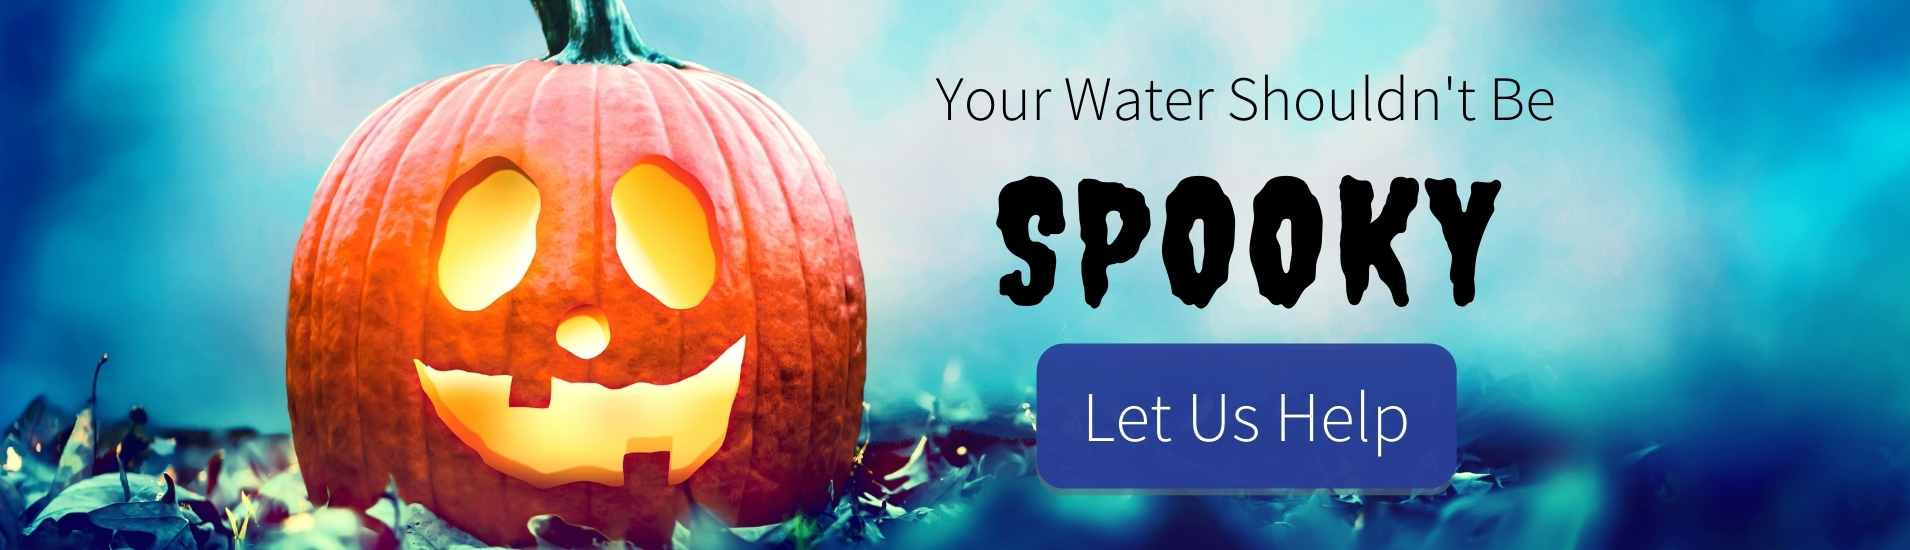 Your Water Shouldn't Be Spooky